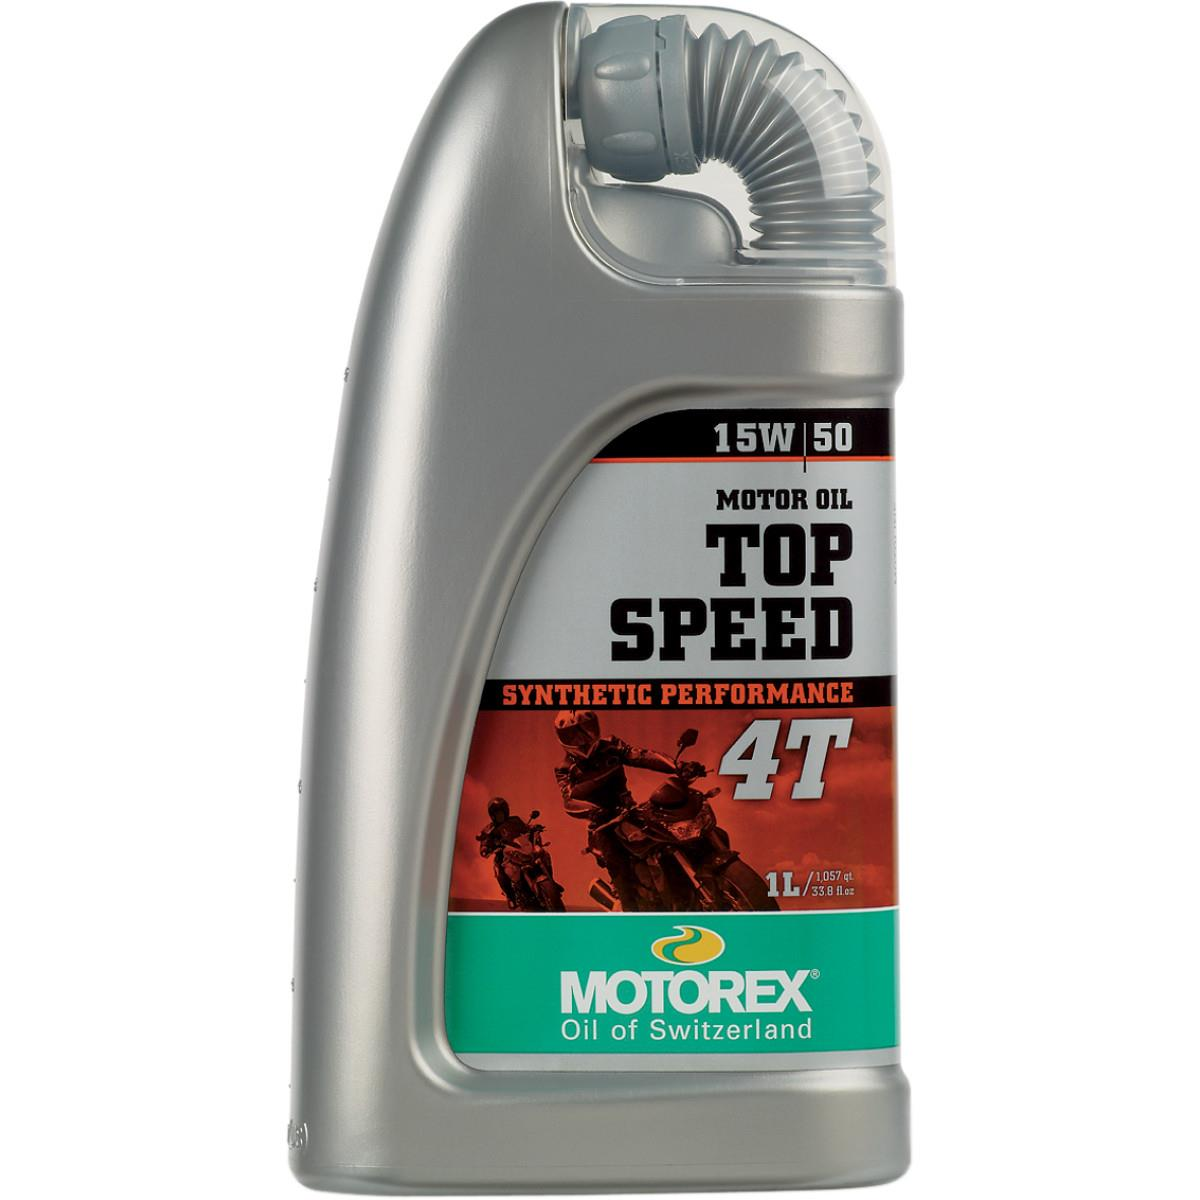 Motorex 109327 Top Speed 4T Oil - 15W50 - 1L.